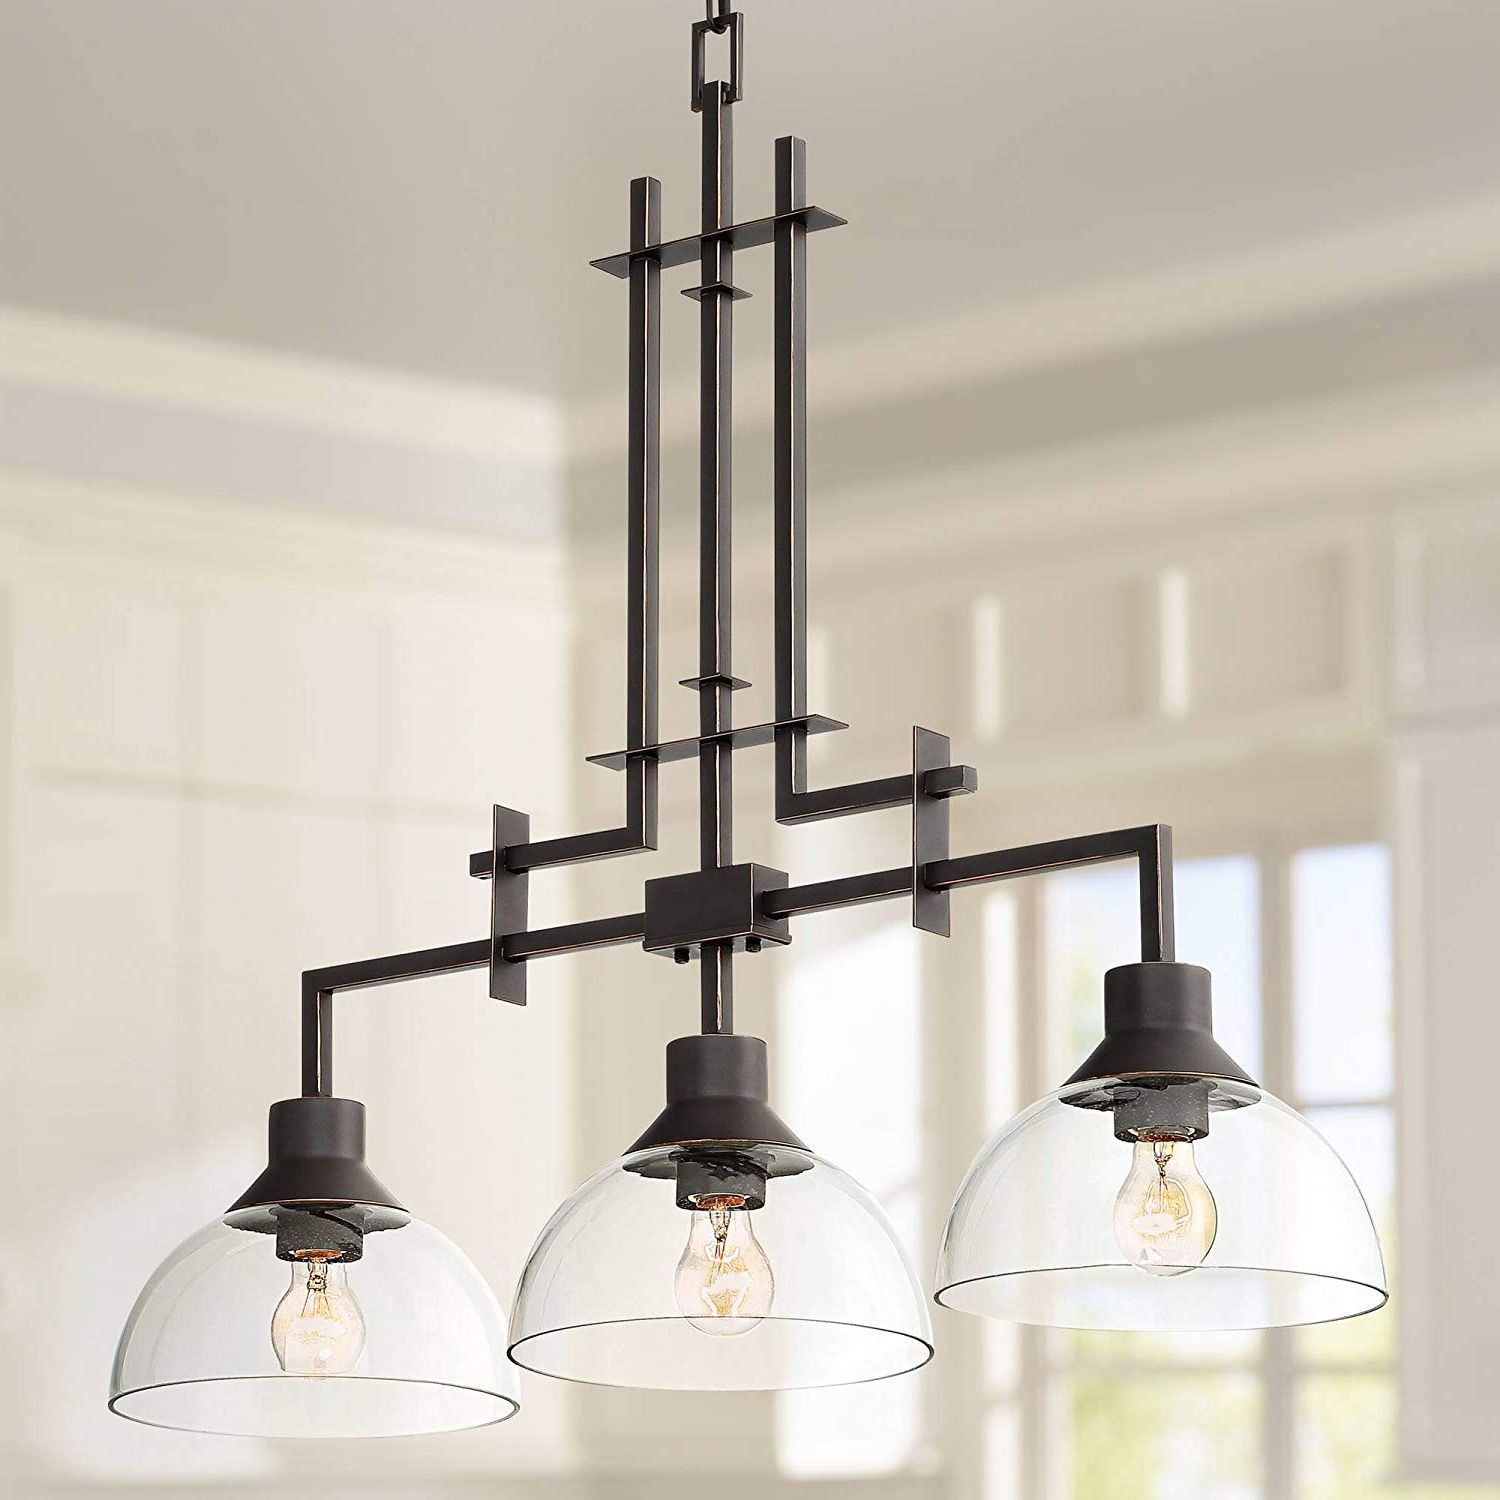 """Most Recently Released Metro 32""""w Bronze And Clear Glass 3 Light Island Chandelier – Franklin Iron  Works Intended For Lynn 6 Light Geometric Chandeliers (View 11 of 25)"""